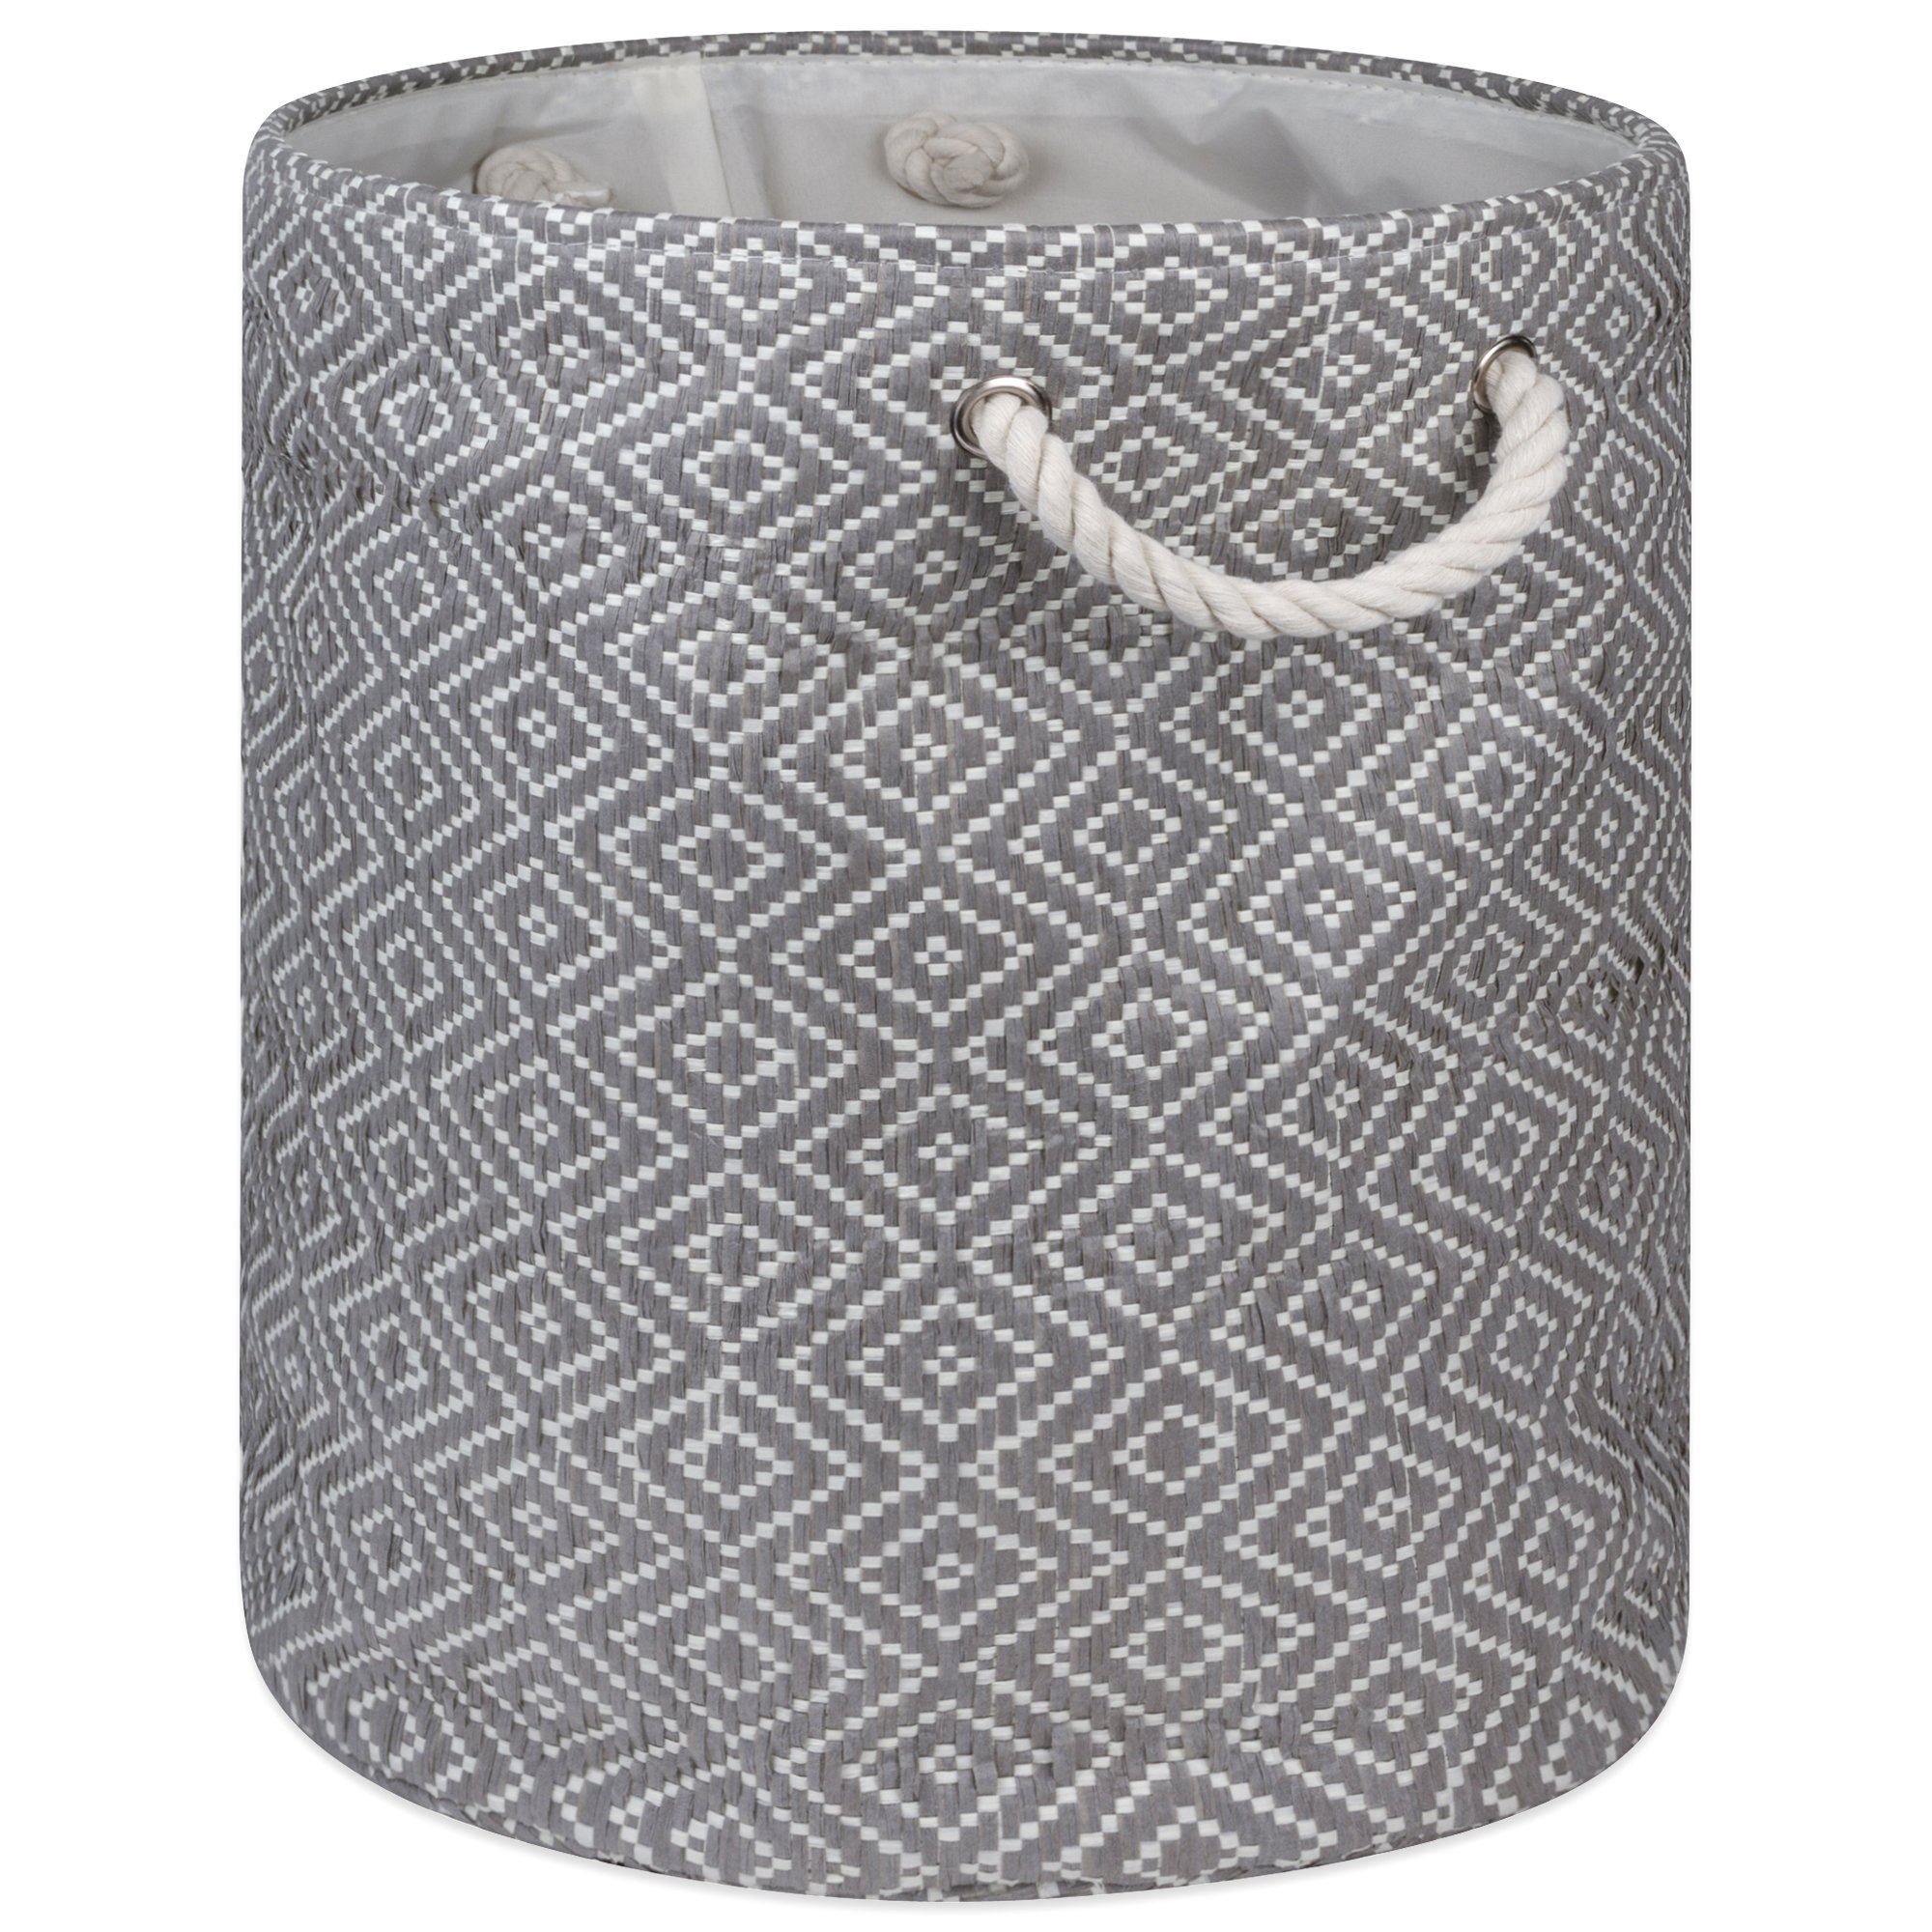 """DII Woven Paper Basket or Bin, Collapsible & Convenient Home Organization Solution for Bedroom, Bathroom, Dorm or Laundry(Medium Round - 14x17""""), Gray & White Diamond Basketweave"""